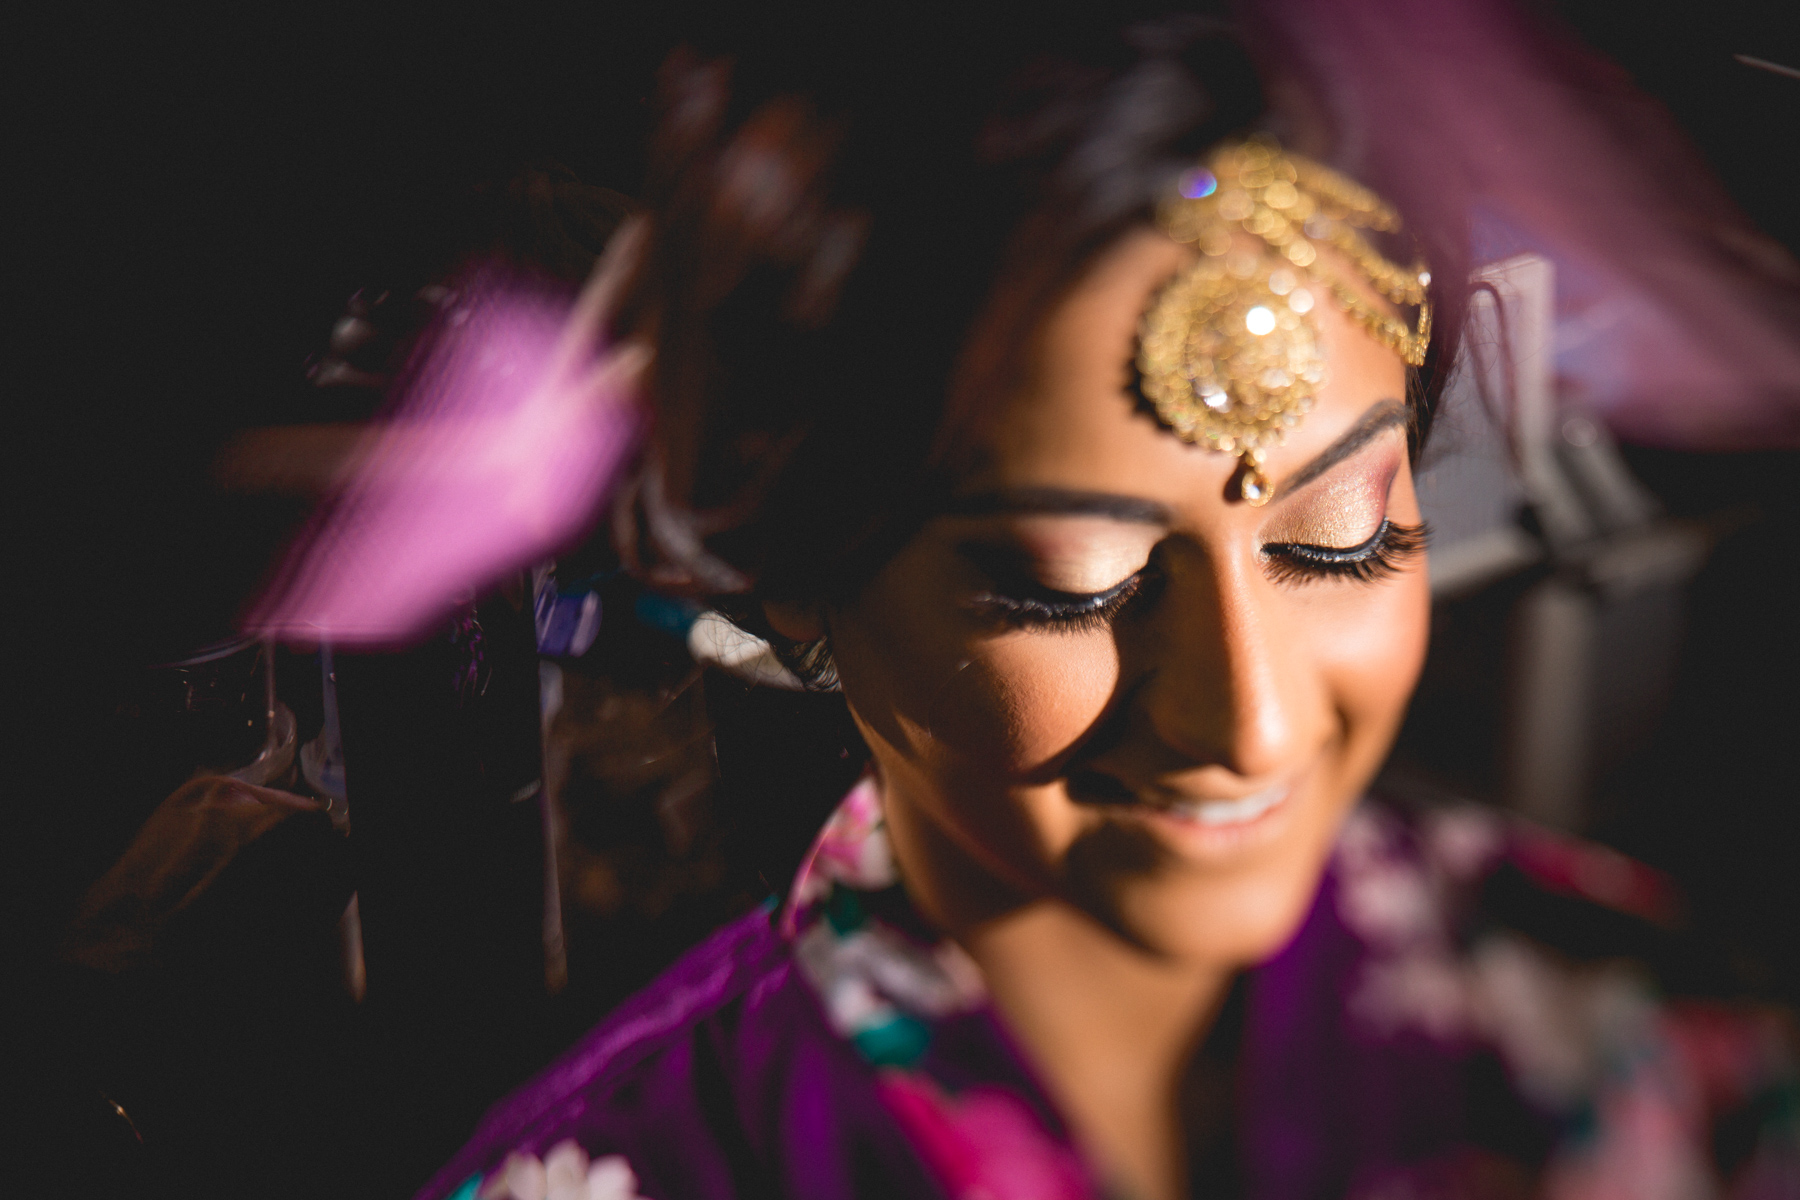 indian-south-asian-wedding-getting-ready-details-34.jpg